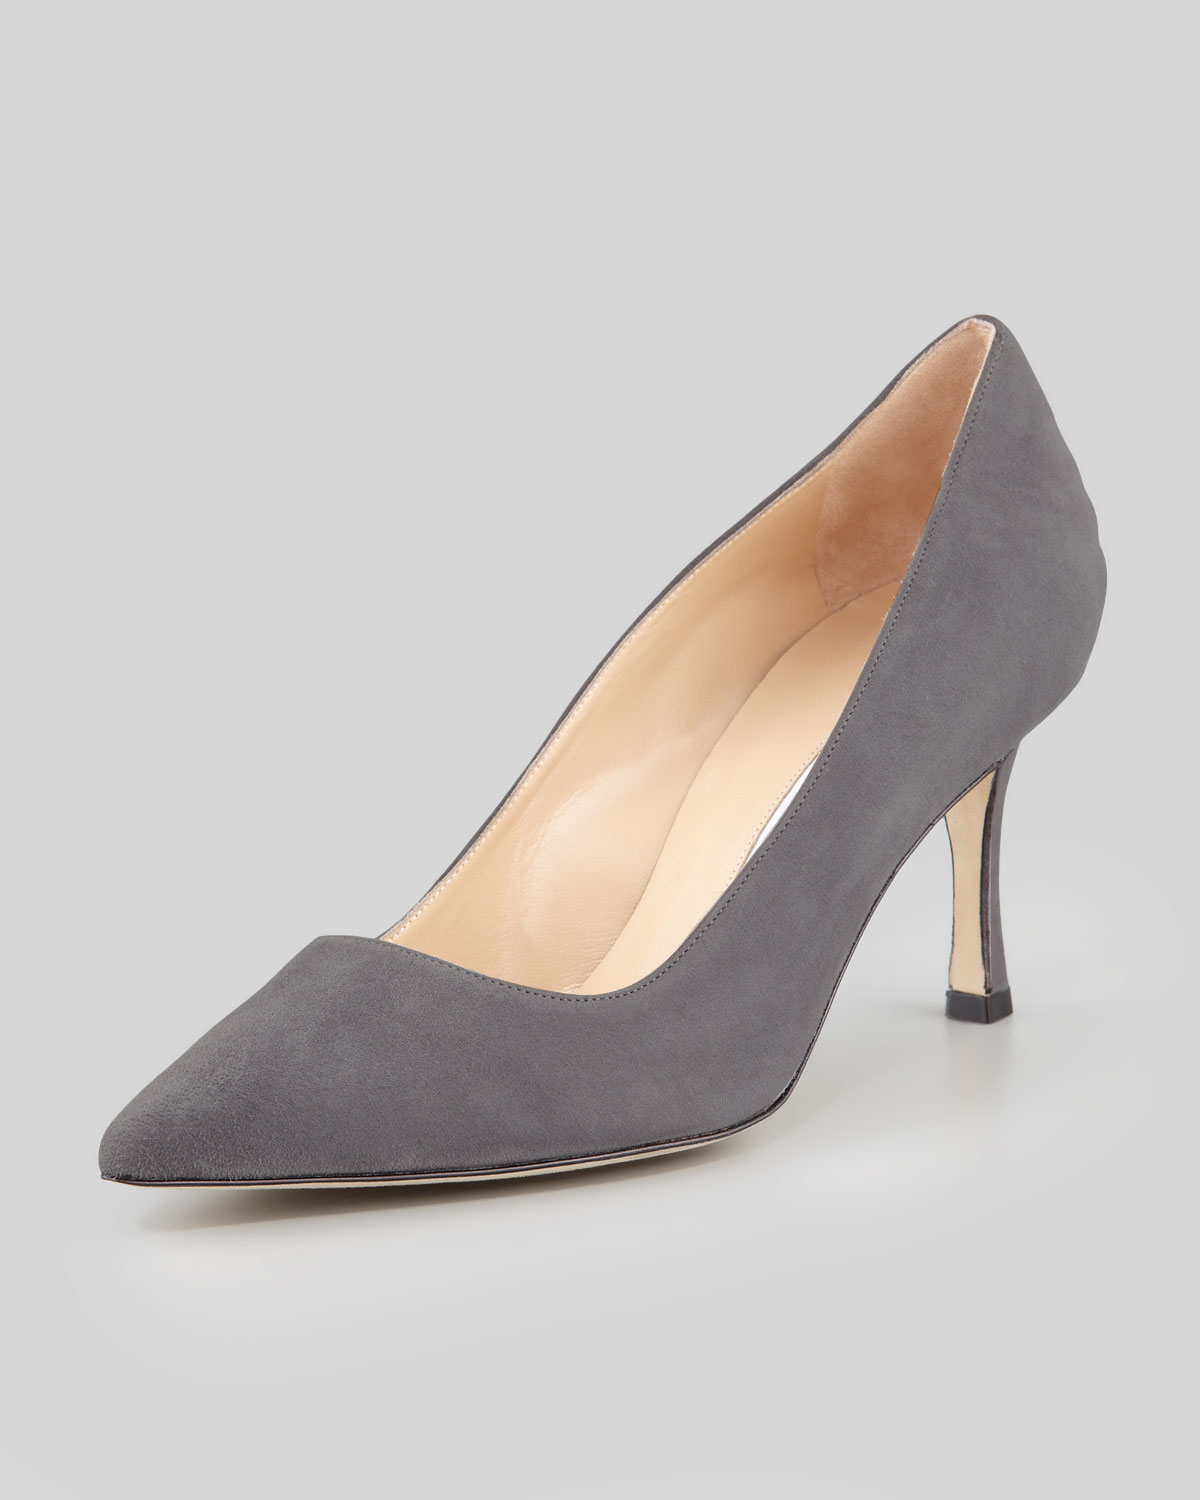 Manolo blahnik bb suede 70mm pump black york store for Scarpe manolo blahnik shop on line